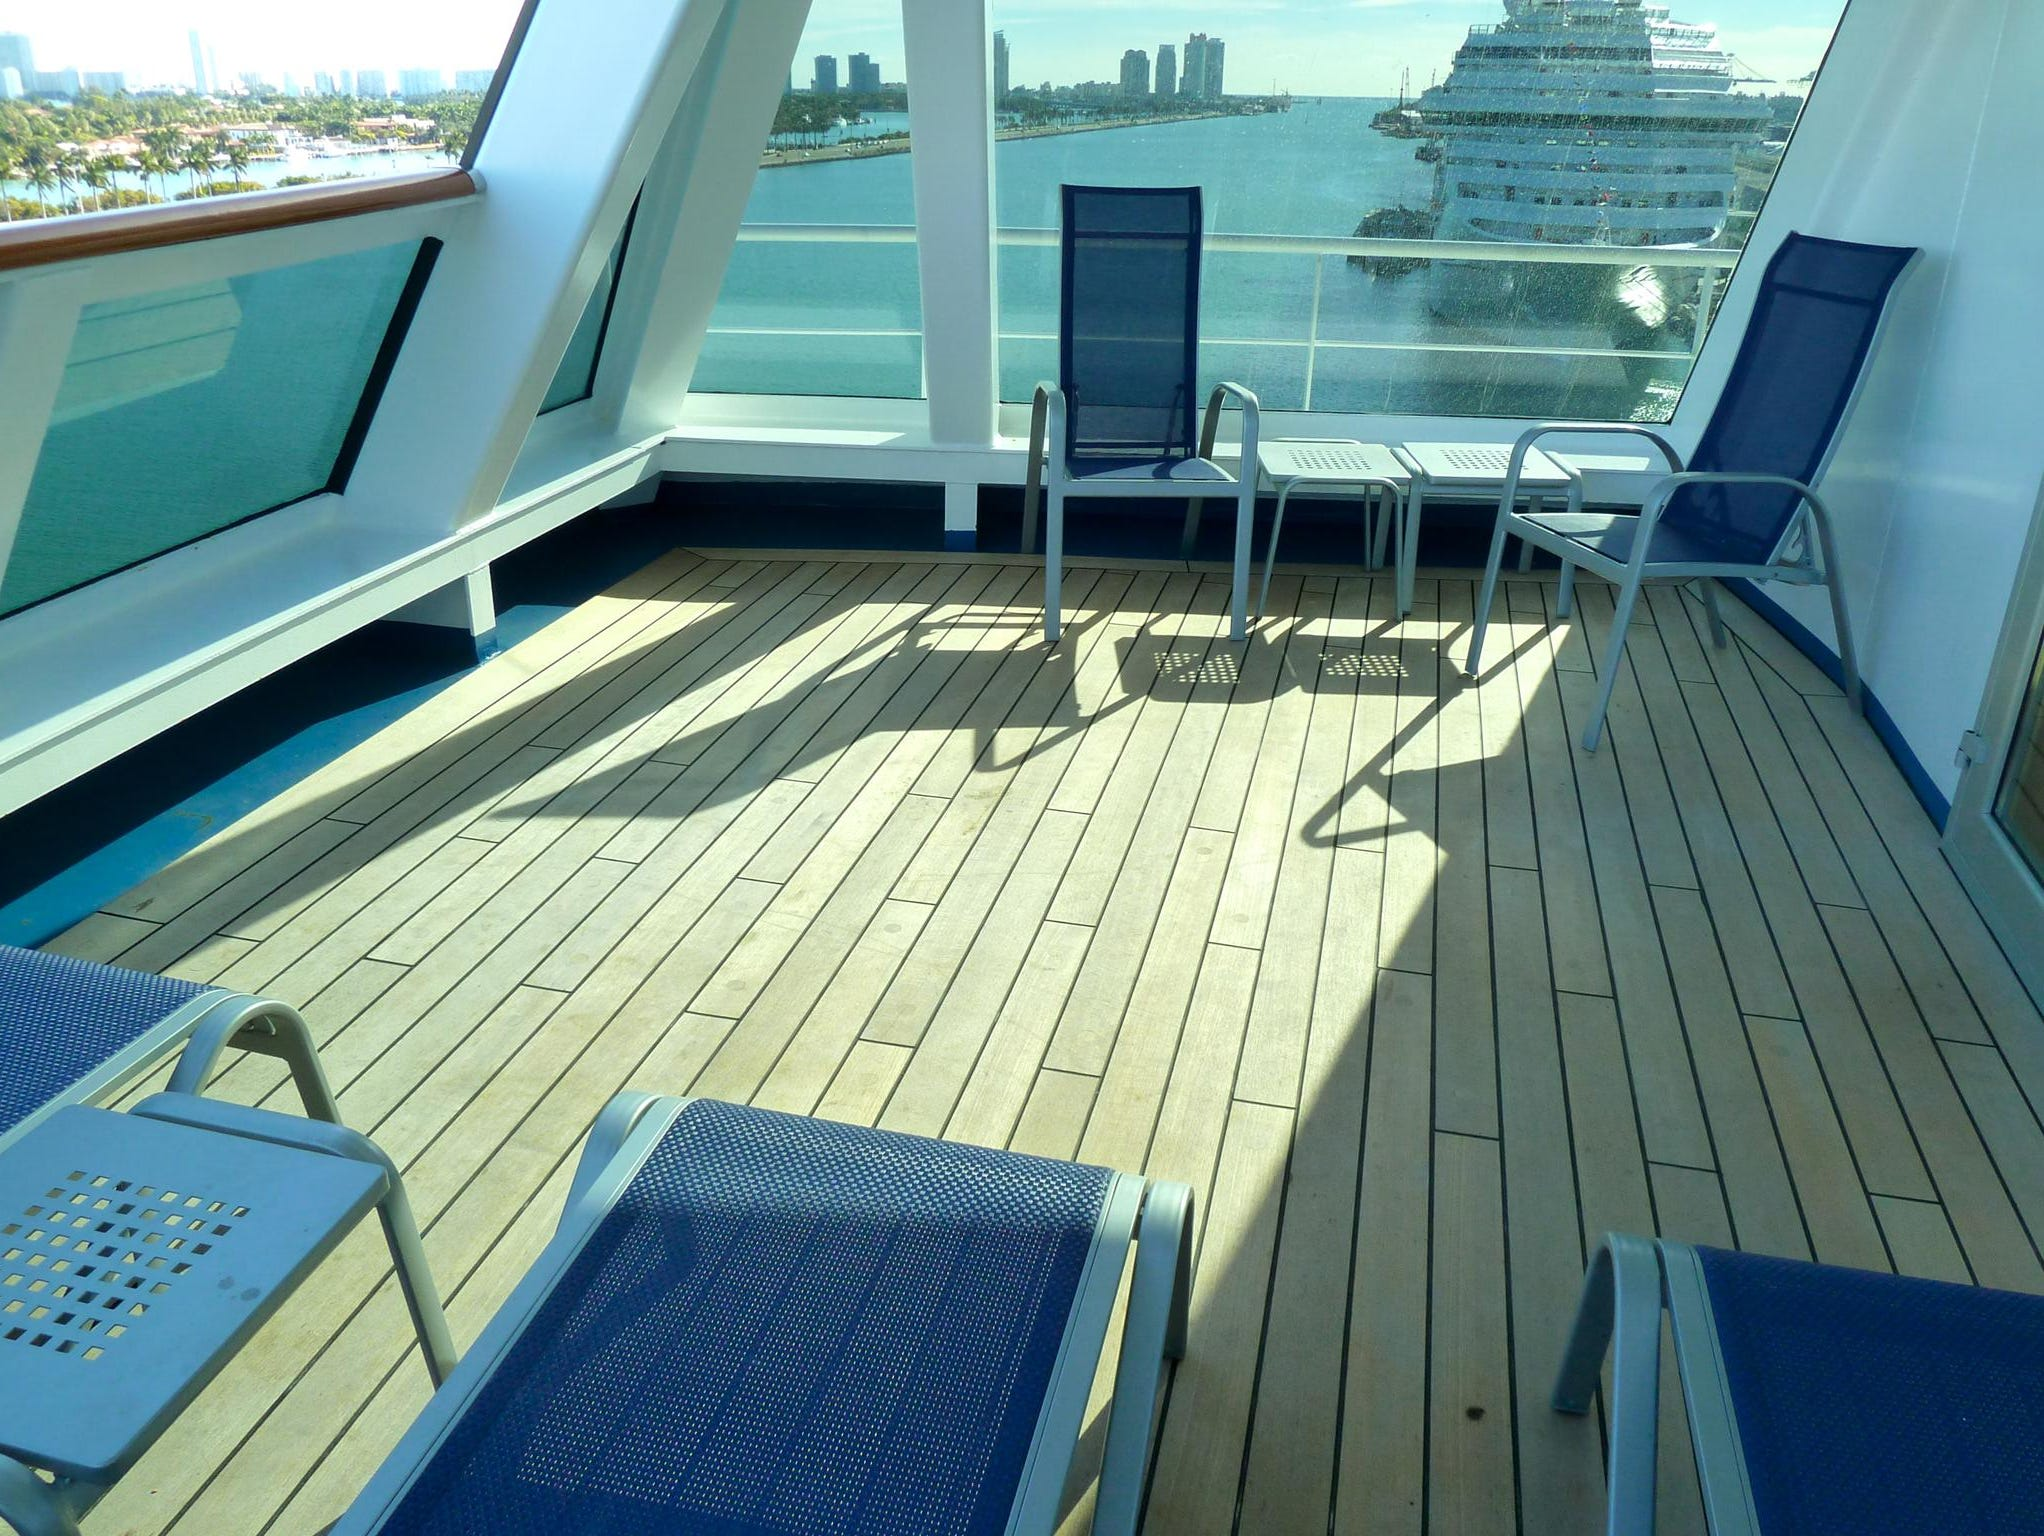 Captain's Suite balconies extend over the bridge wings and are sheltered from the wind by a full-length glass screen.